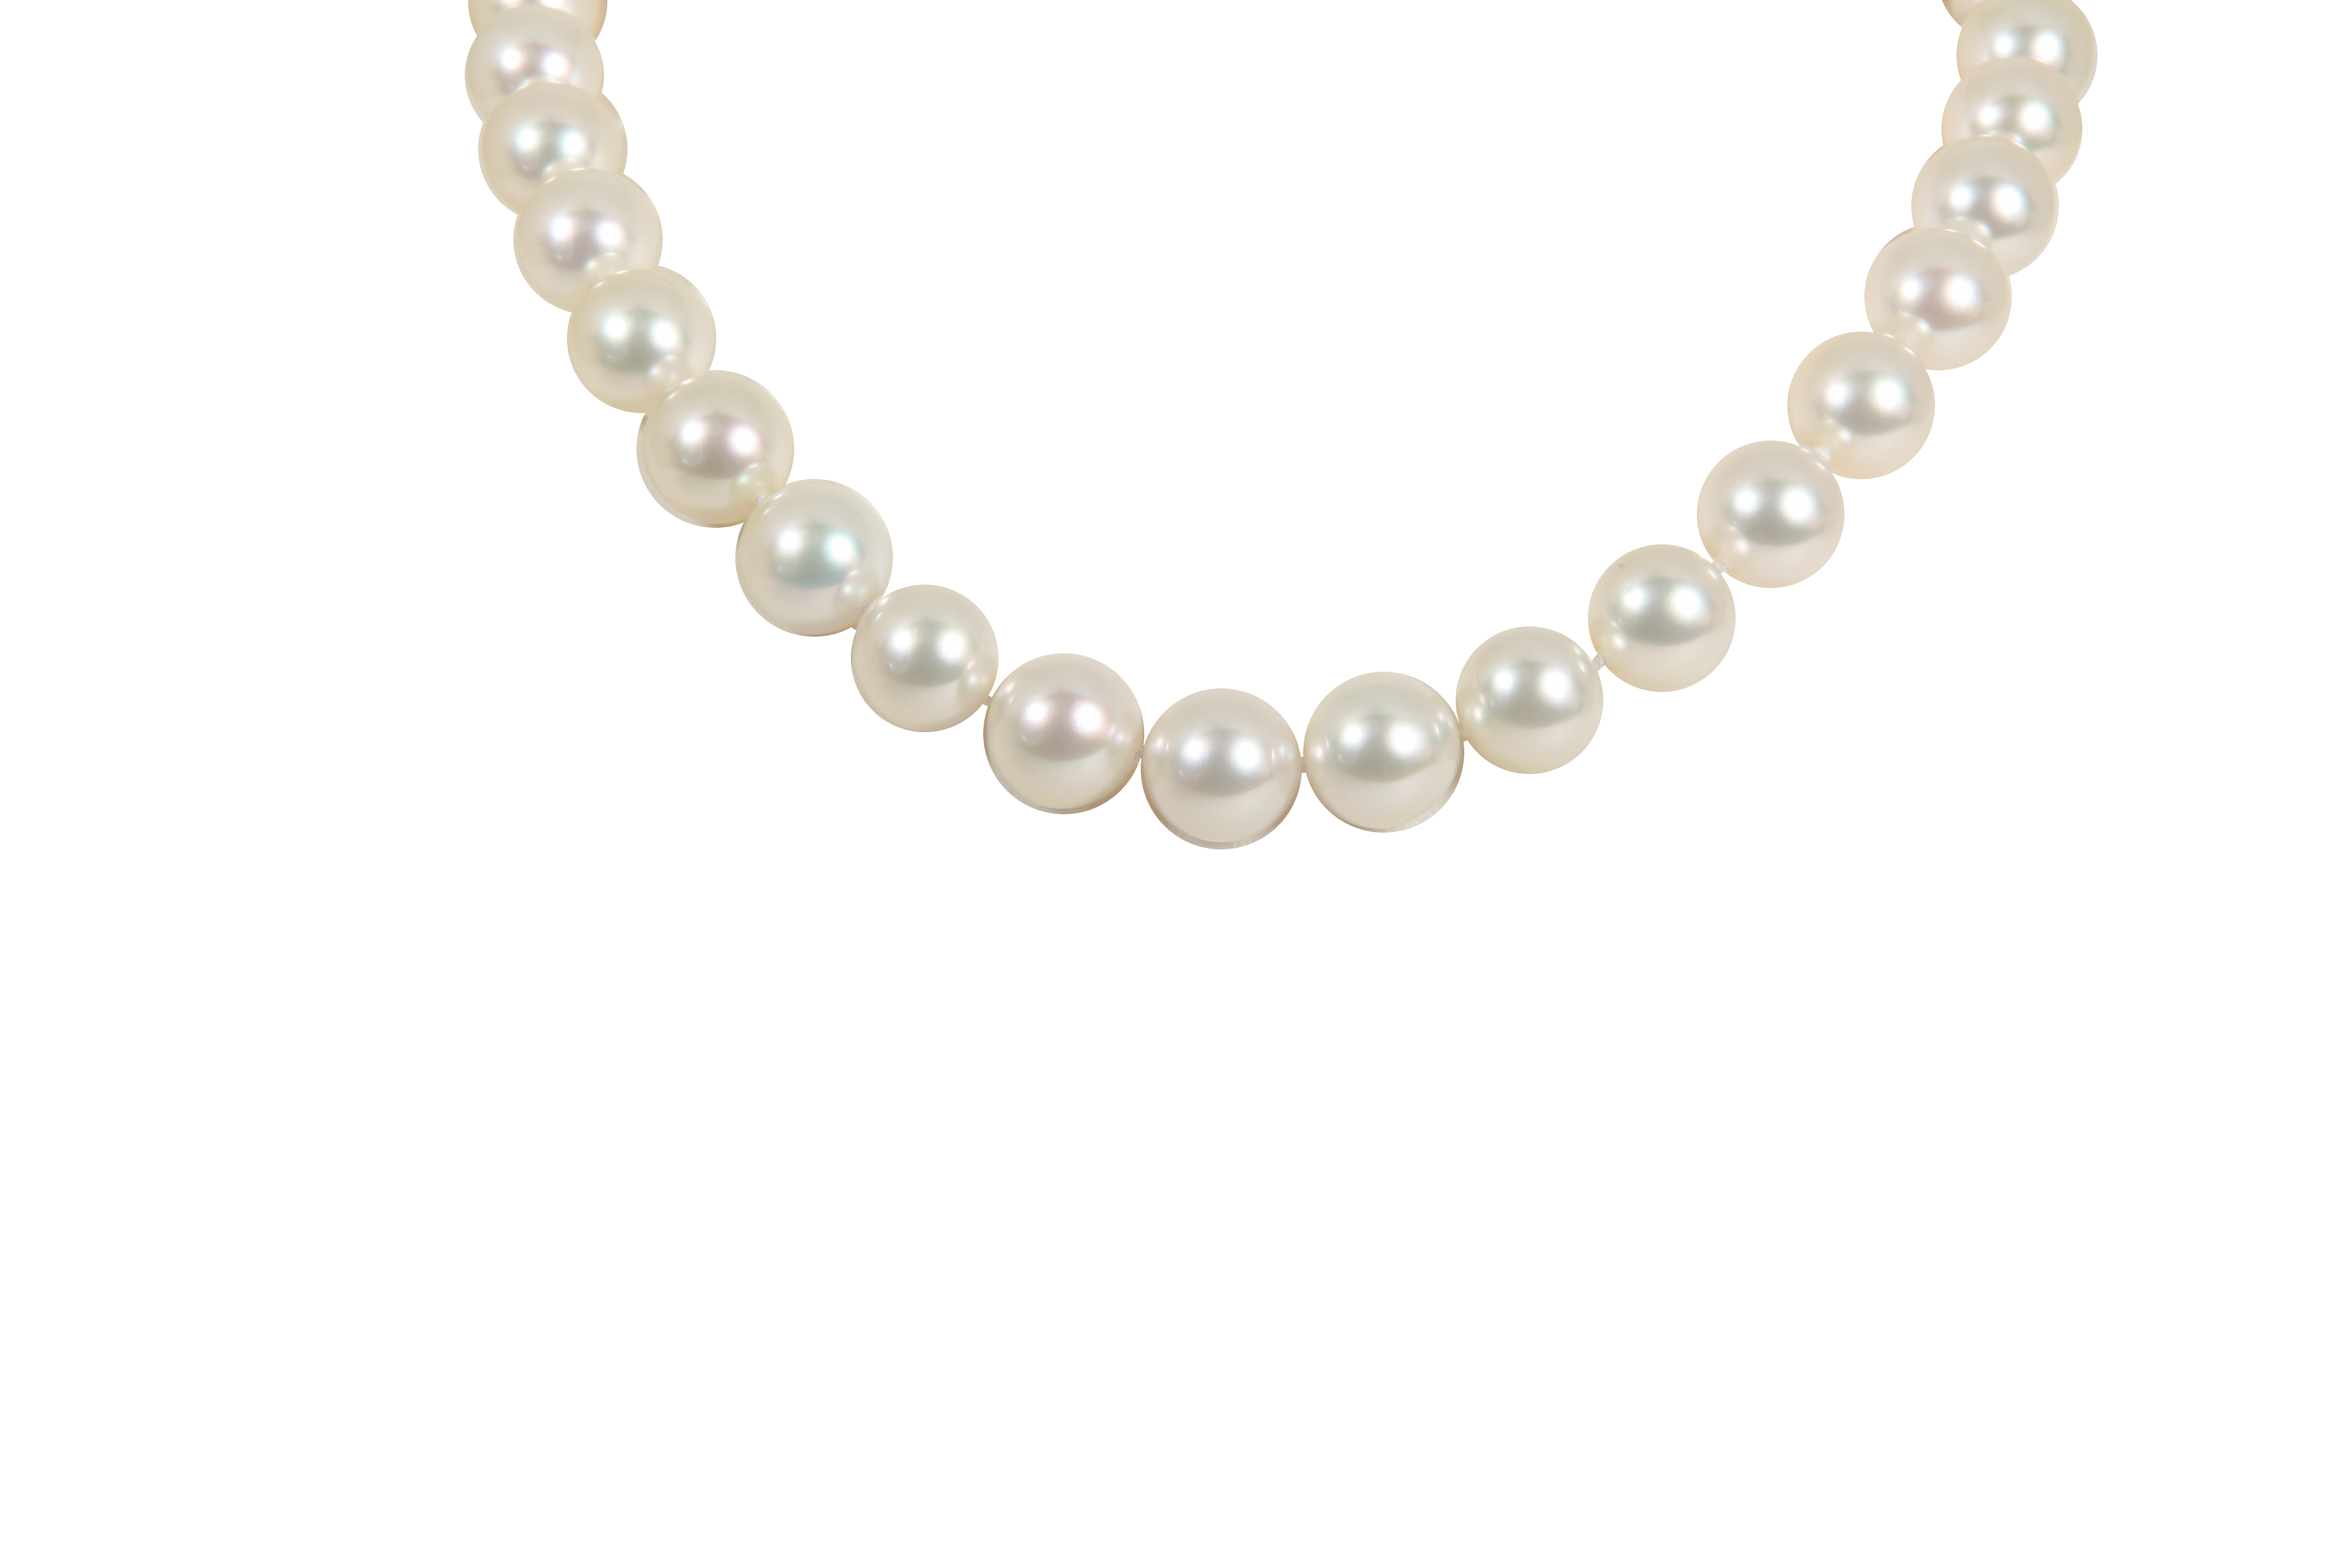 Marvel jewelry white south. Transparent pearls banner transparent download